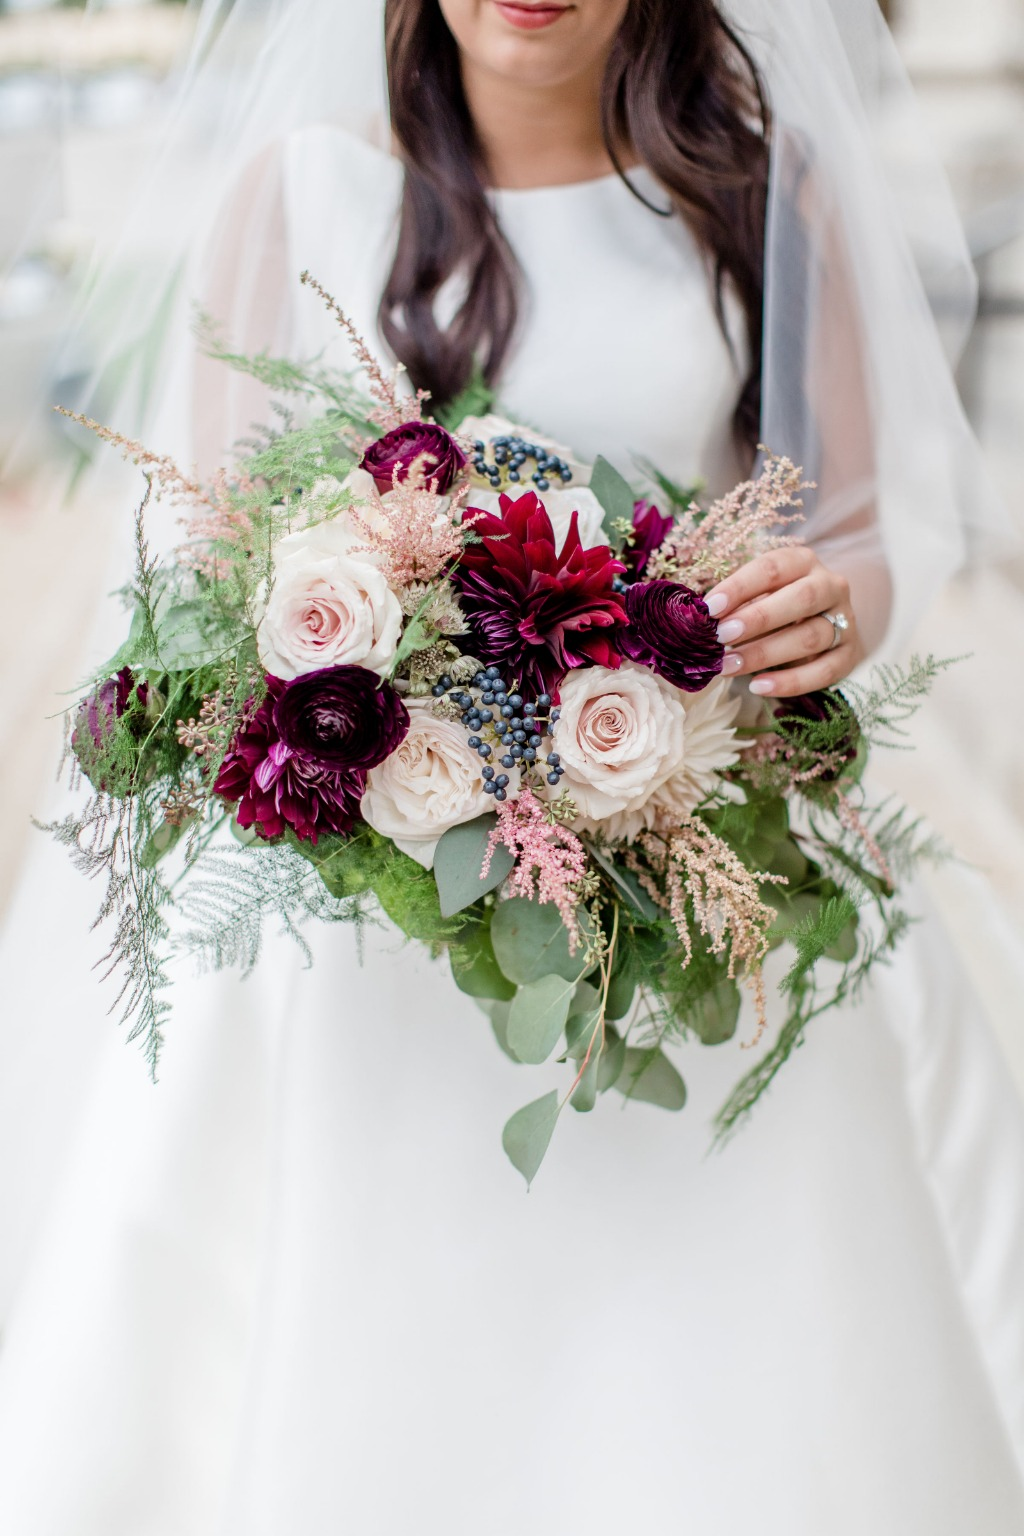 Lush blooms ranging from blush to deep burgundy are featured in this bridal bouquet with astilbe and viburnum berries to add delightful